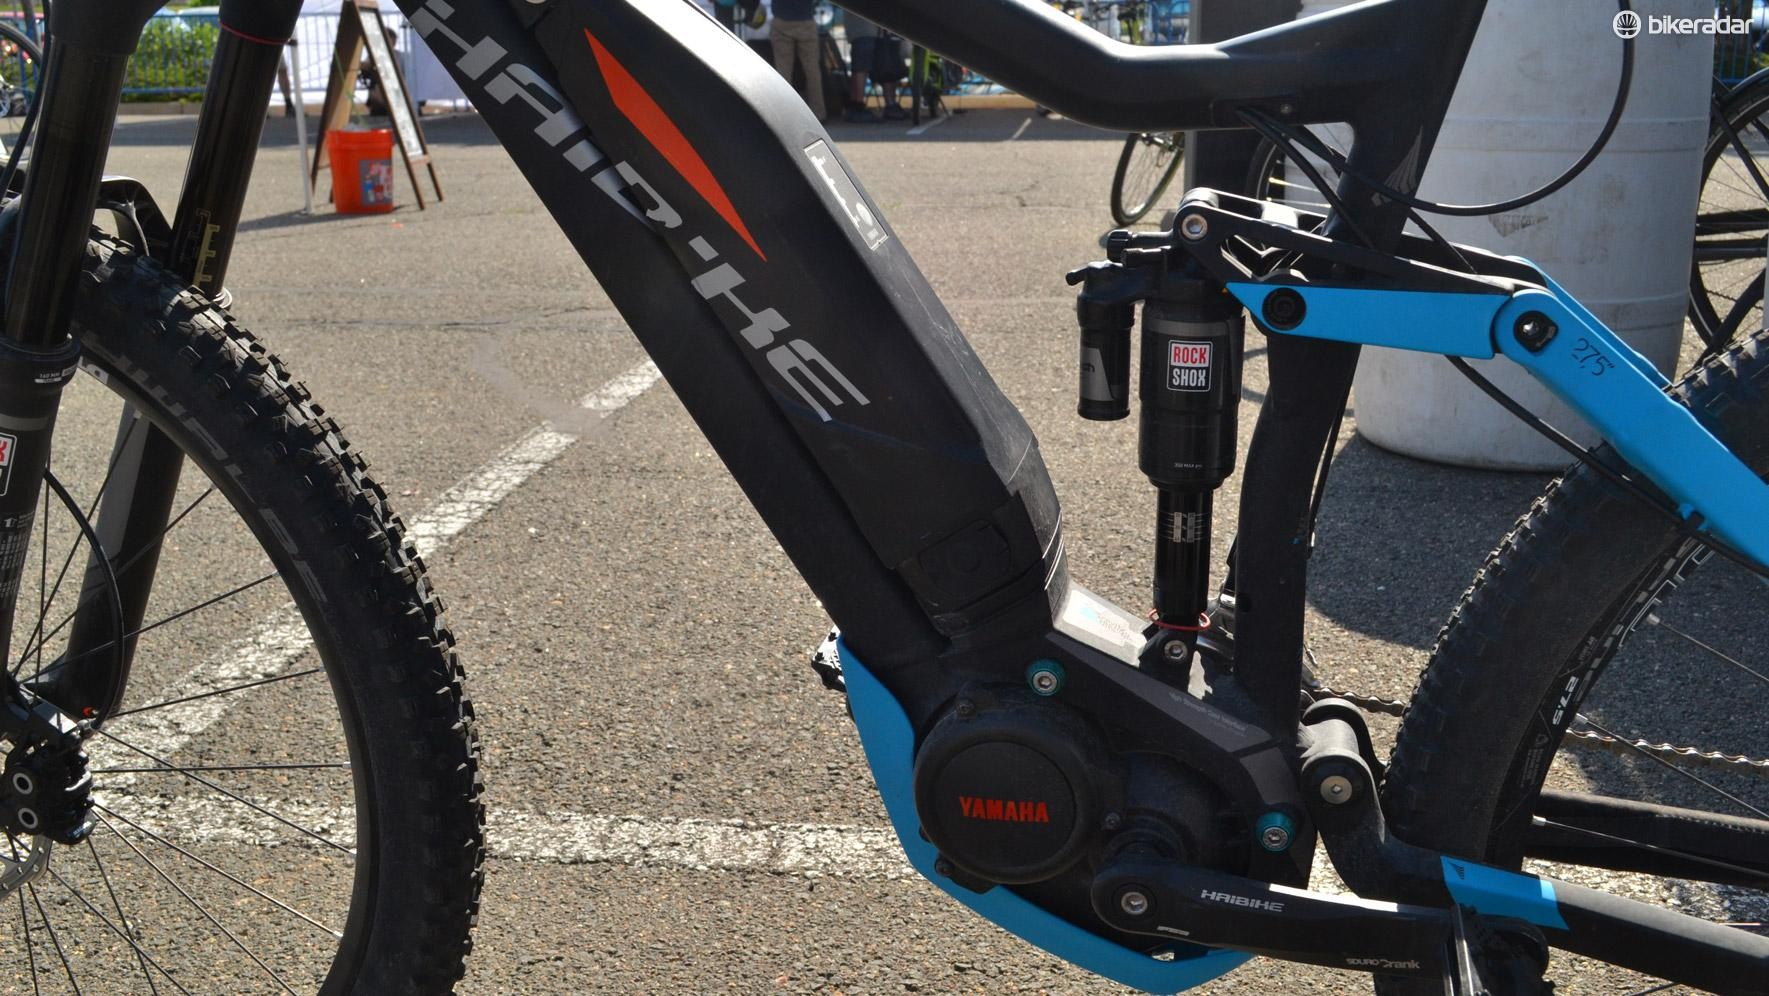 Mid-drive motors are essential to e-MTBs for weight distribution and smooth power delivery